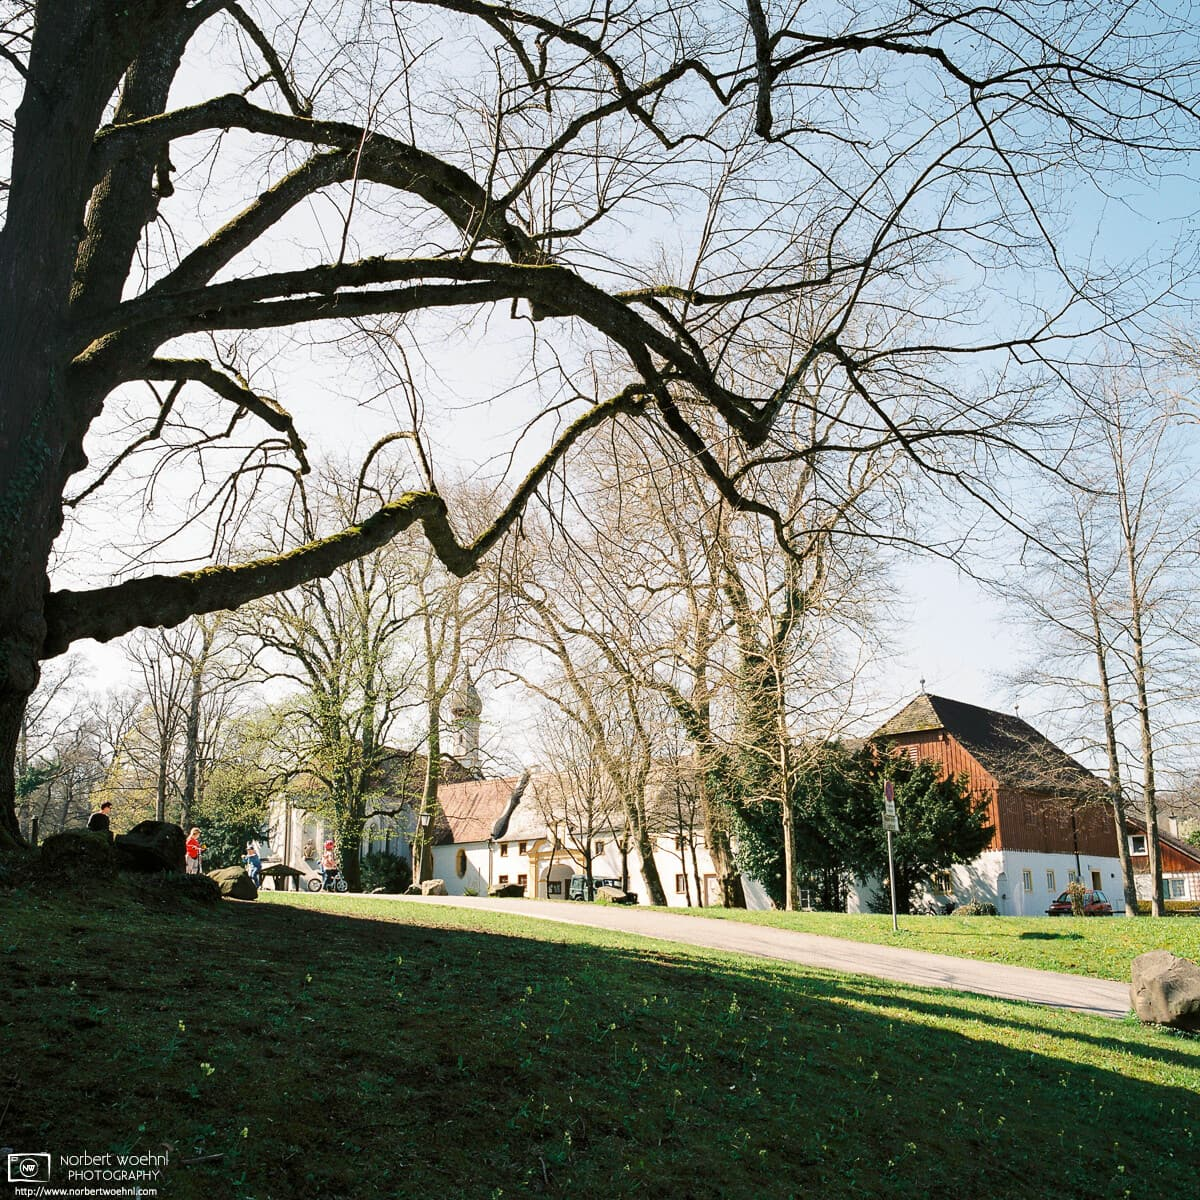 A nice spring day outside Bernried Monastery, located in close proximity to Lake Starnberg in Bavaria, Germany.